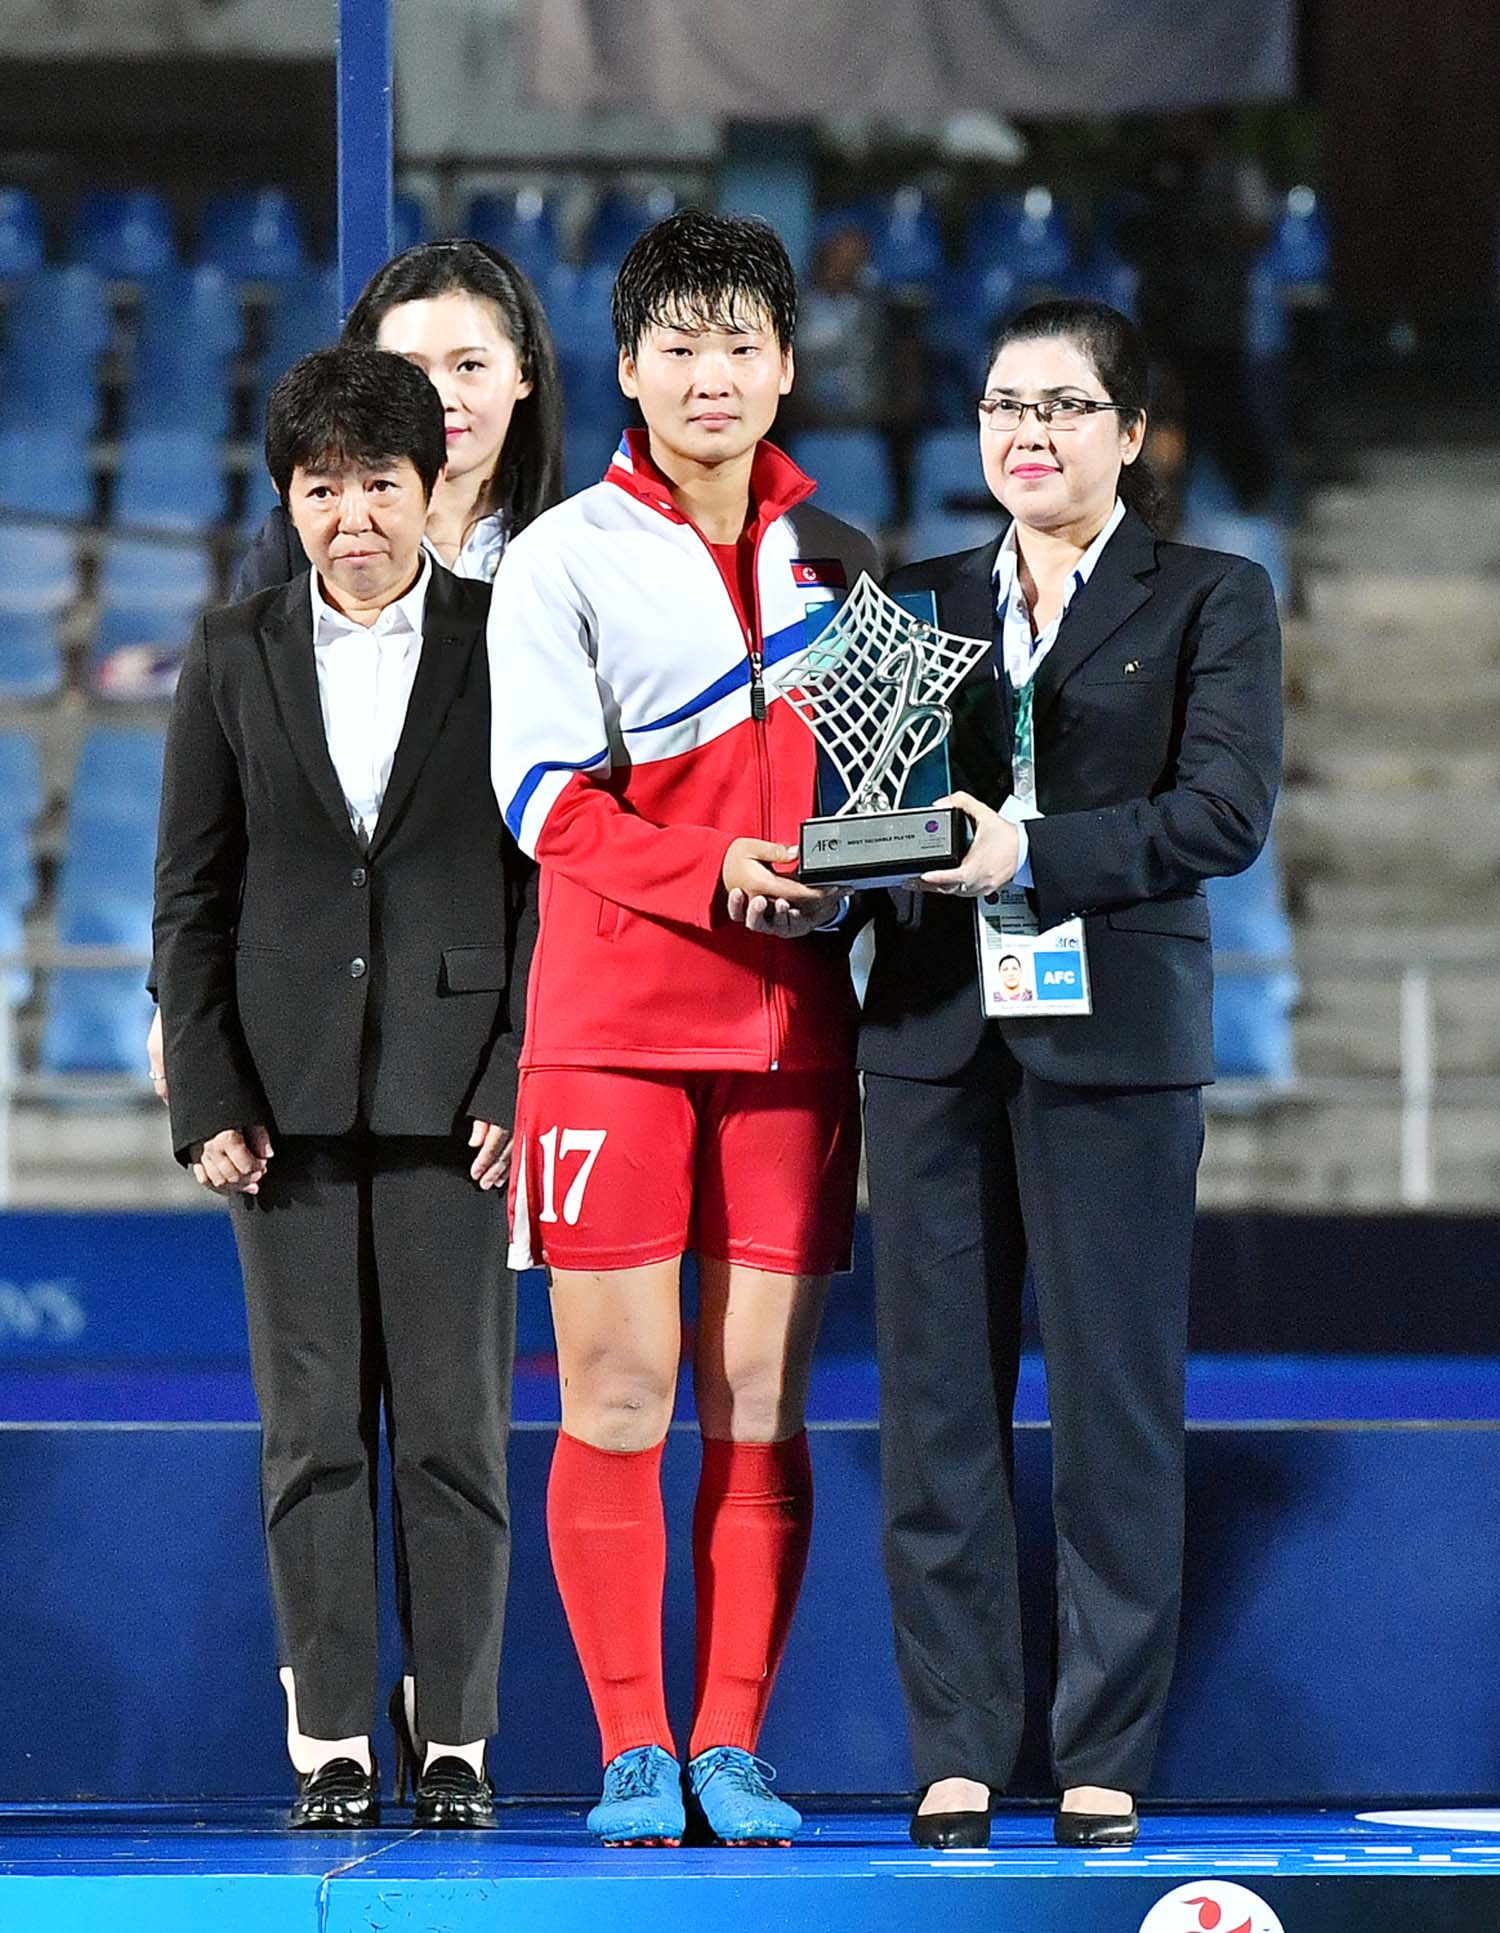 Member of FIFA Mahfuza Akter Kiron handing over the prize to a winner of the AFC Under-16 Women's Championship at Chonburi in Thailand recently.